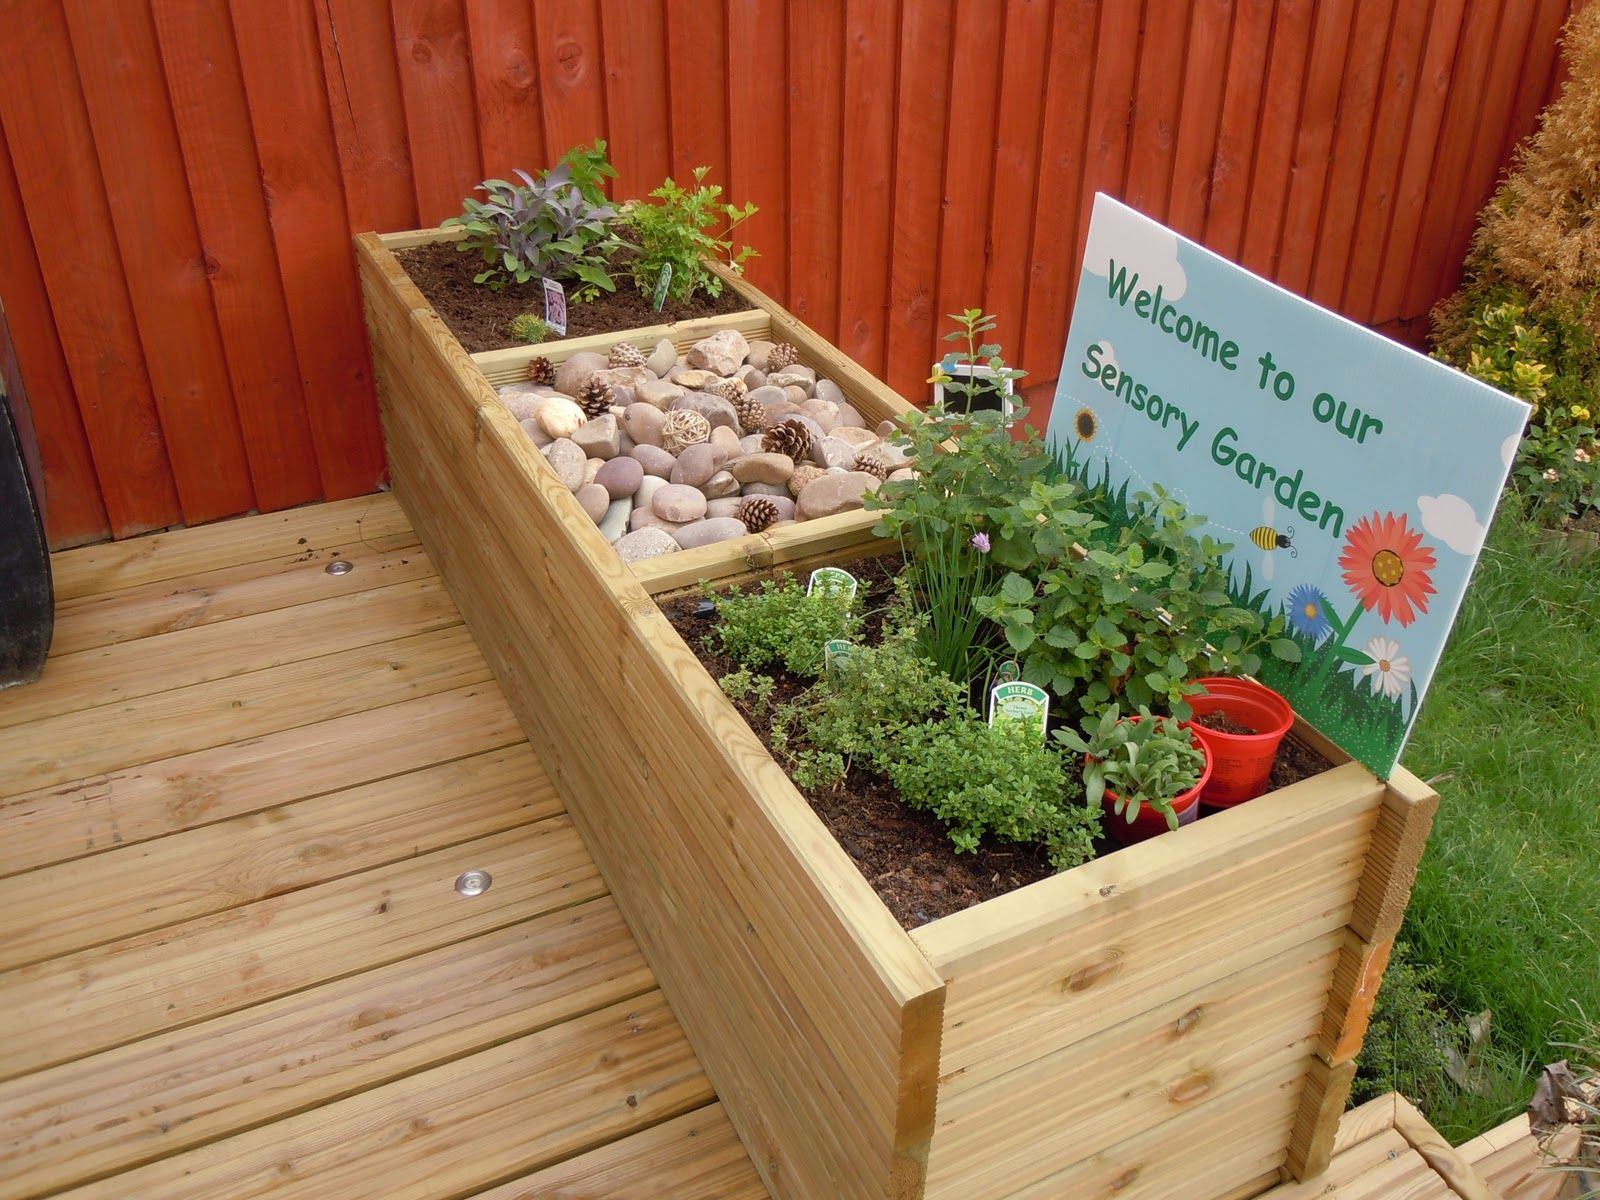 childrens sensory garden veggie garden to help cut costs down on food kids can help maintain it